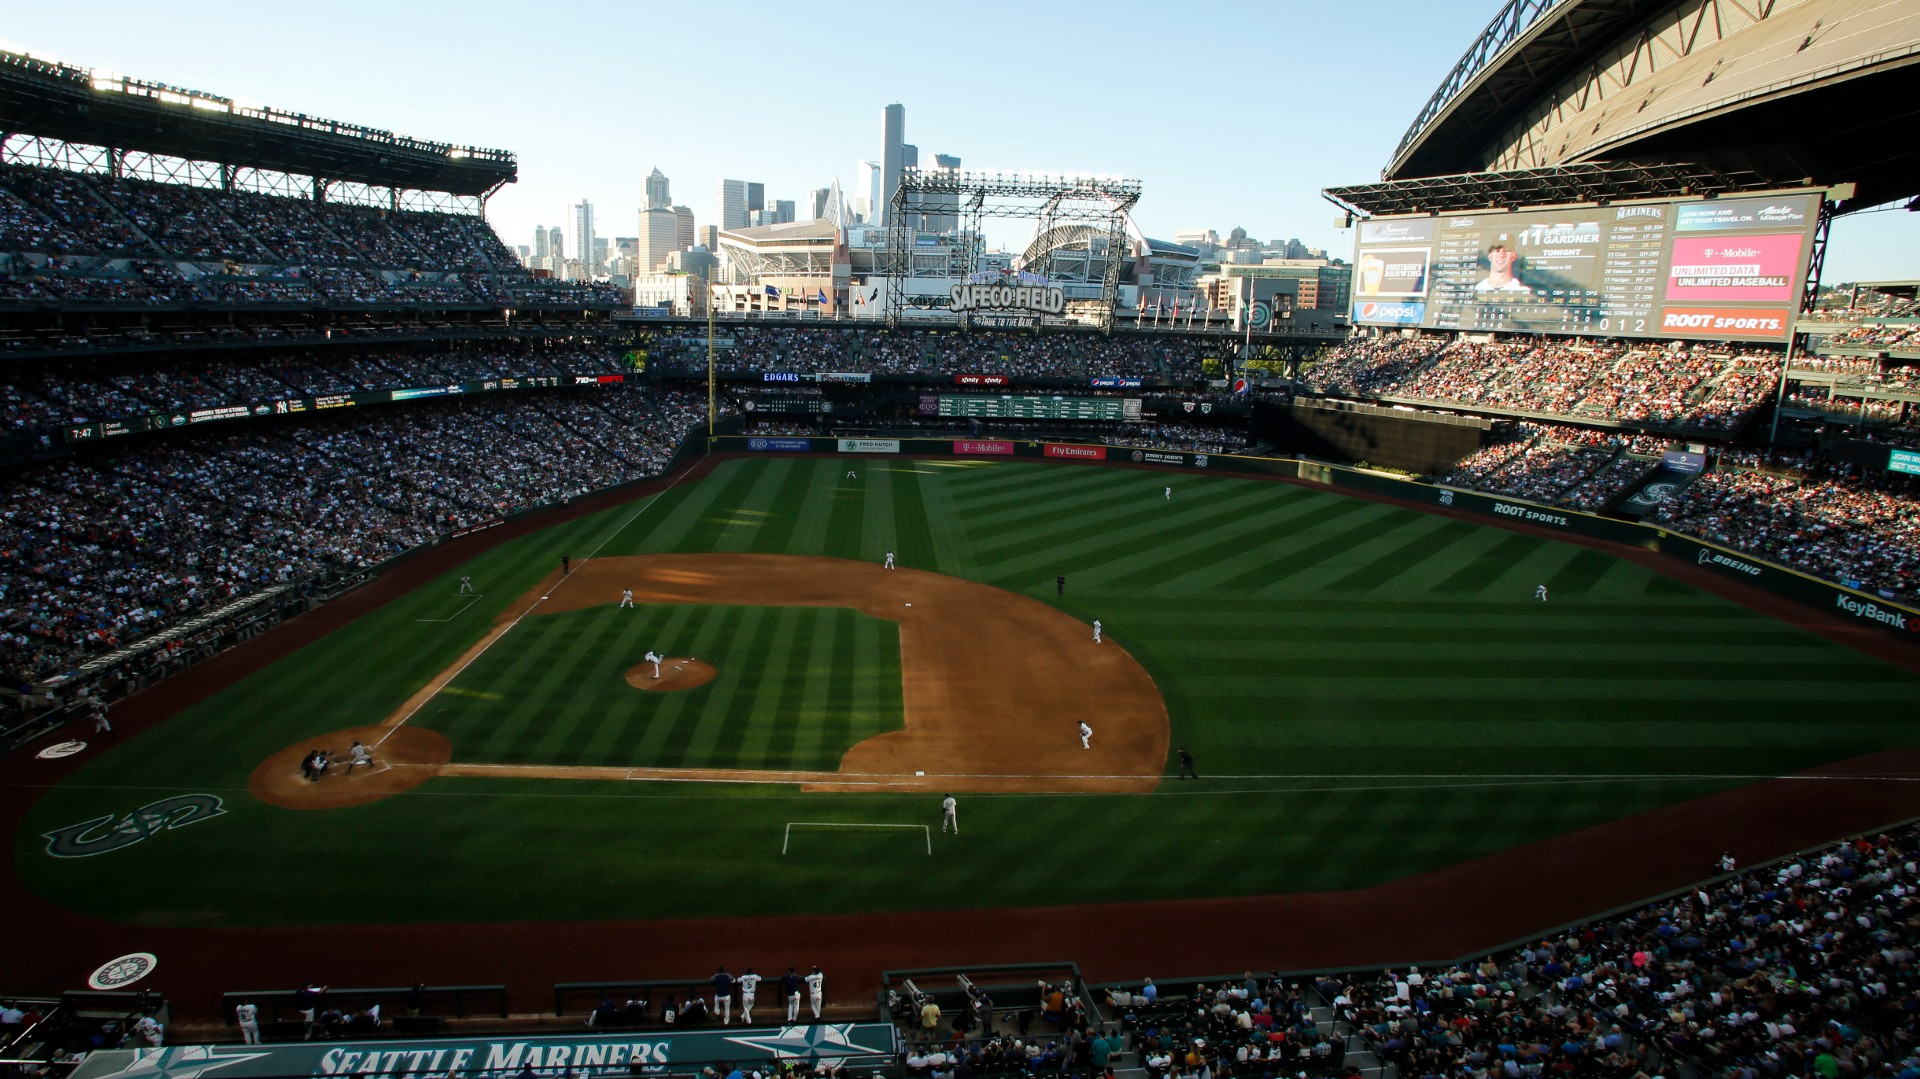 Entire Playing Surface at Safeco Field to Be Replaced This fseason